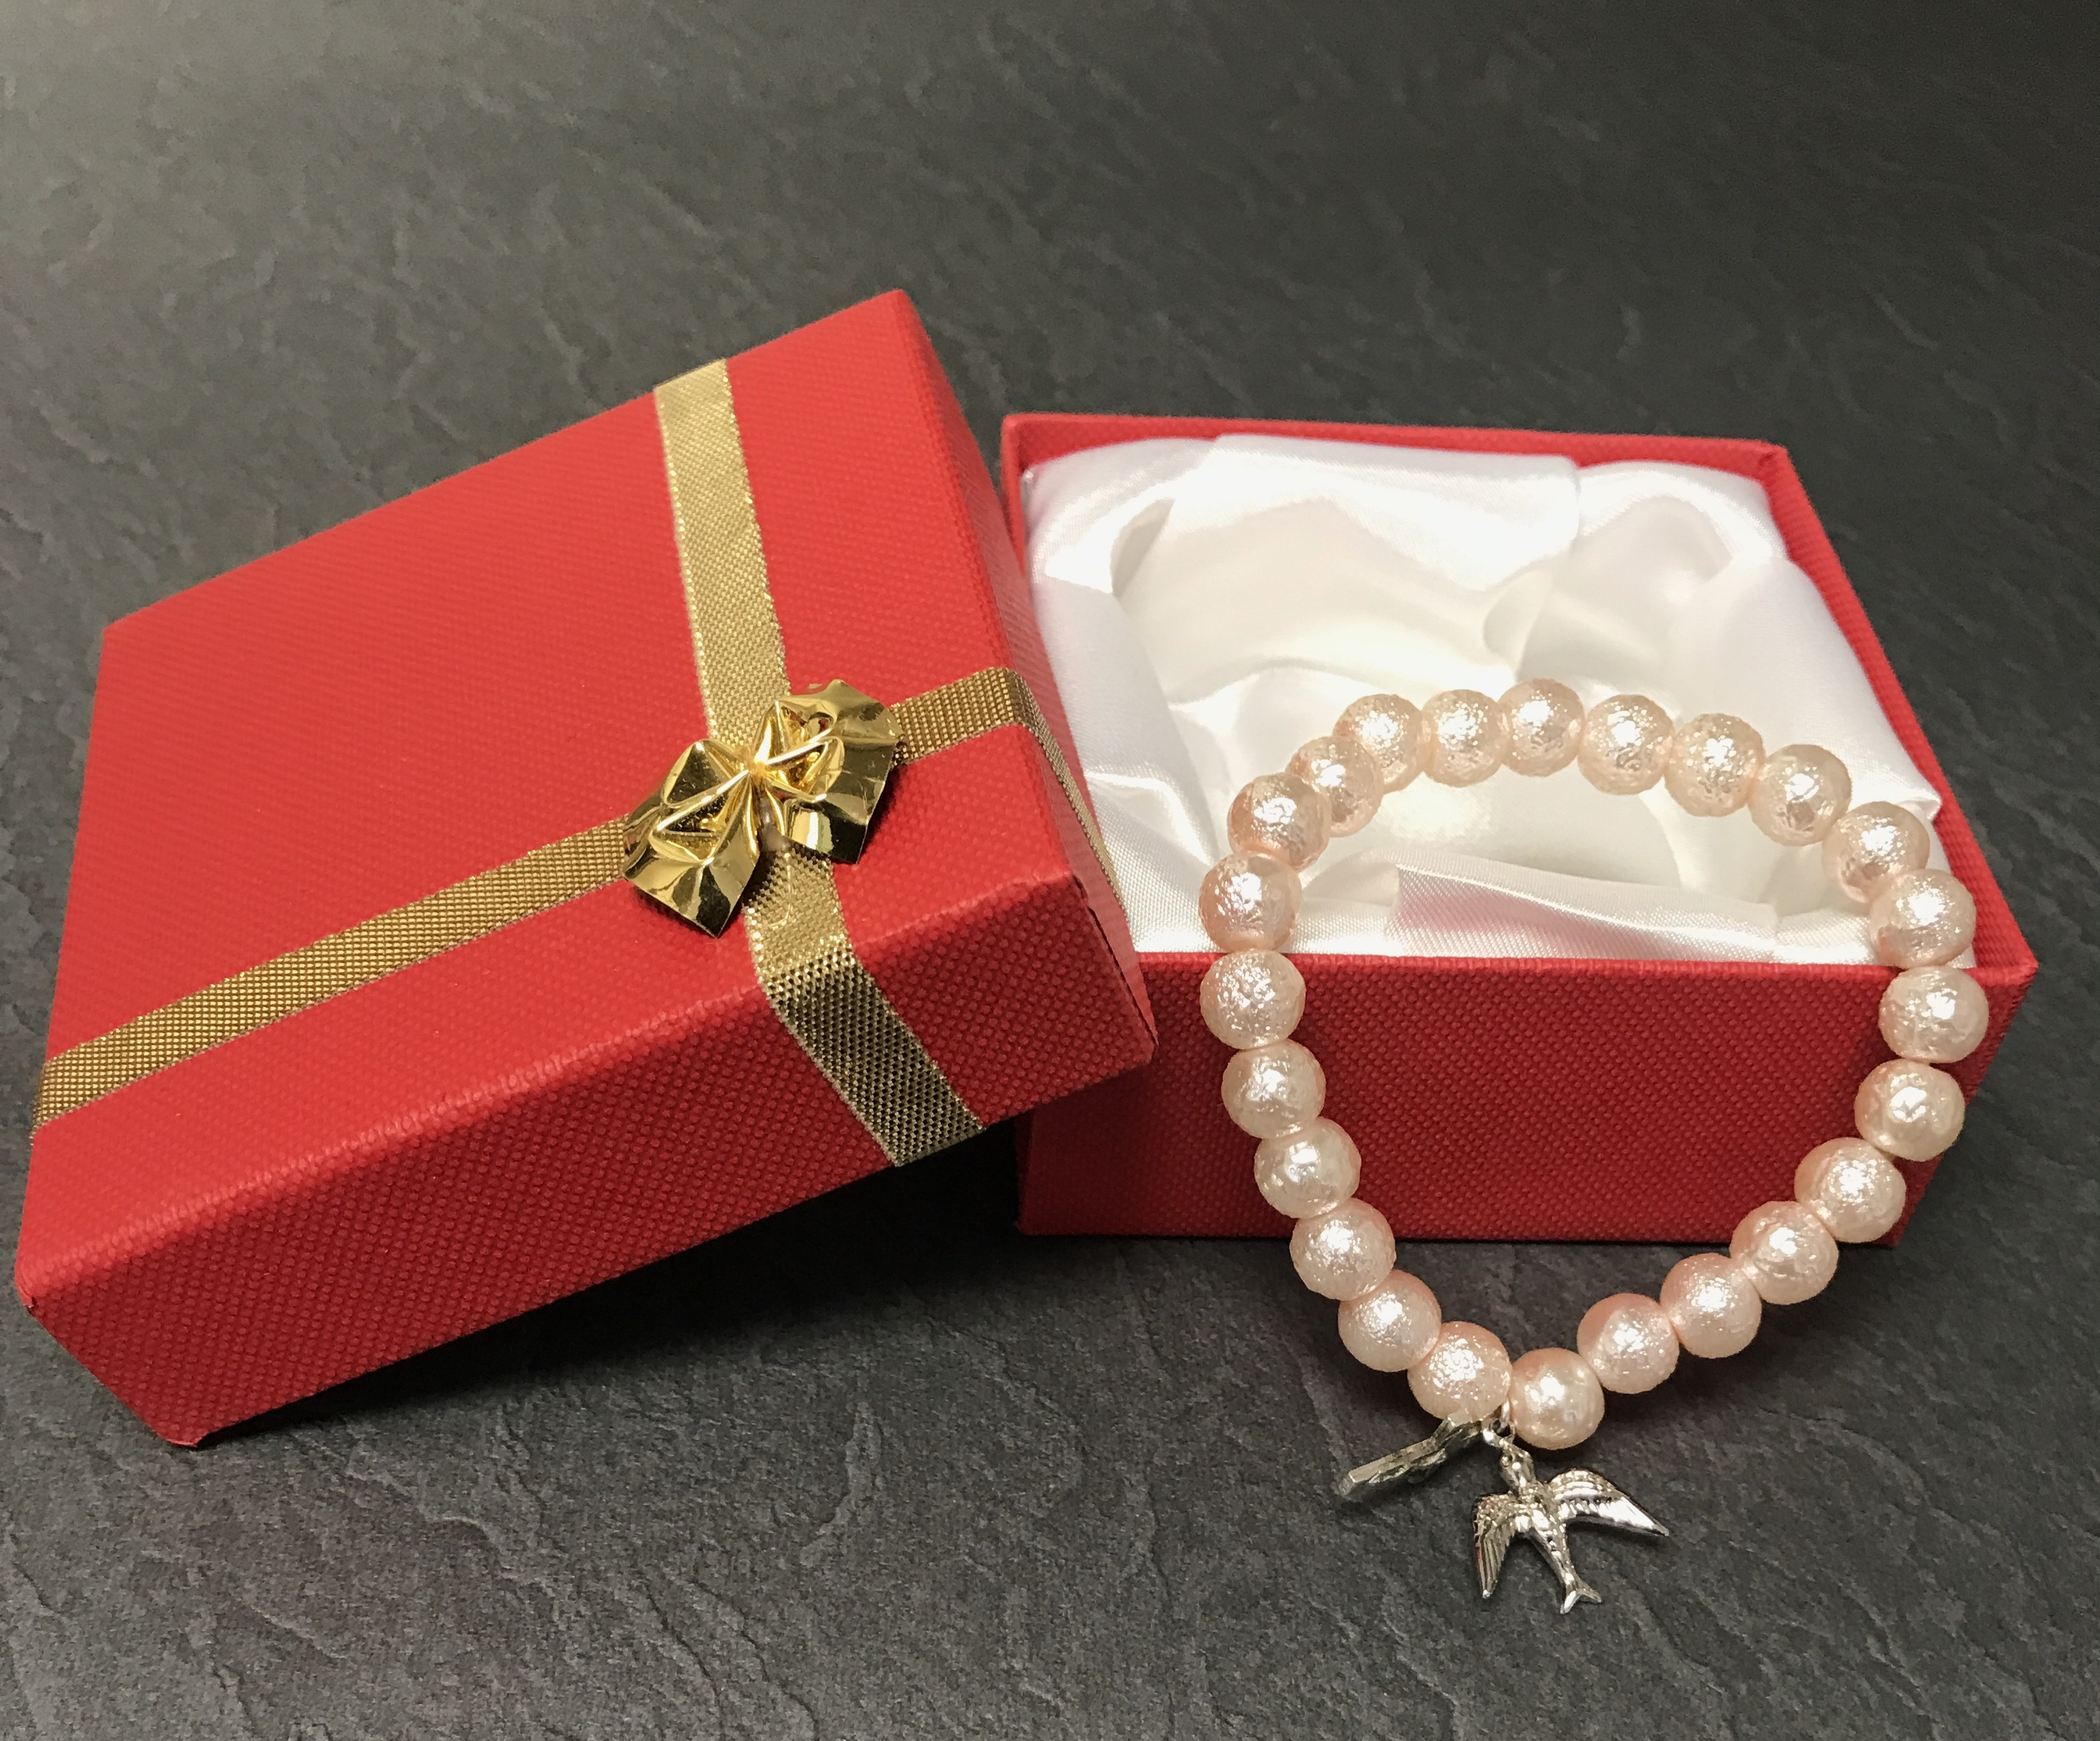 PINK PEARL CONFIRMATION BRACELET GIFT BOXED